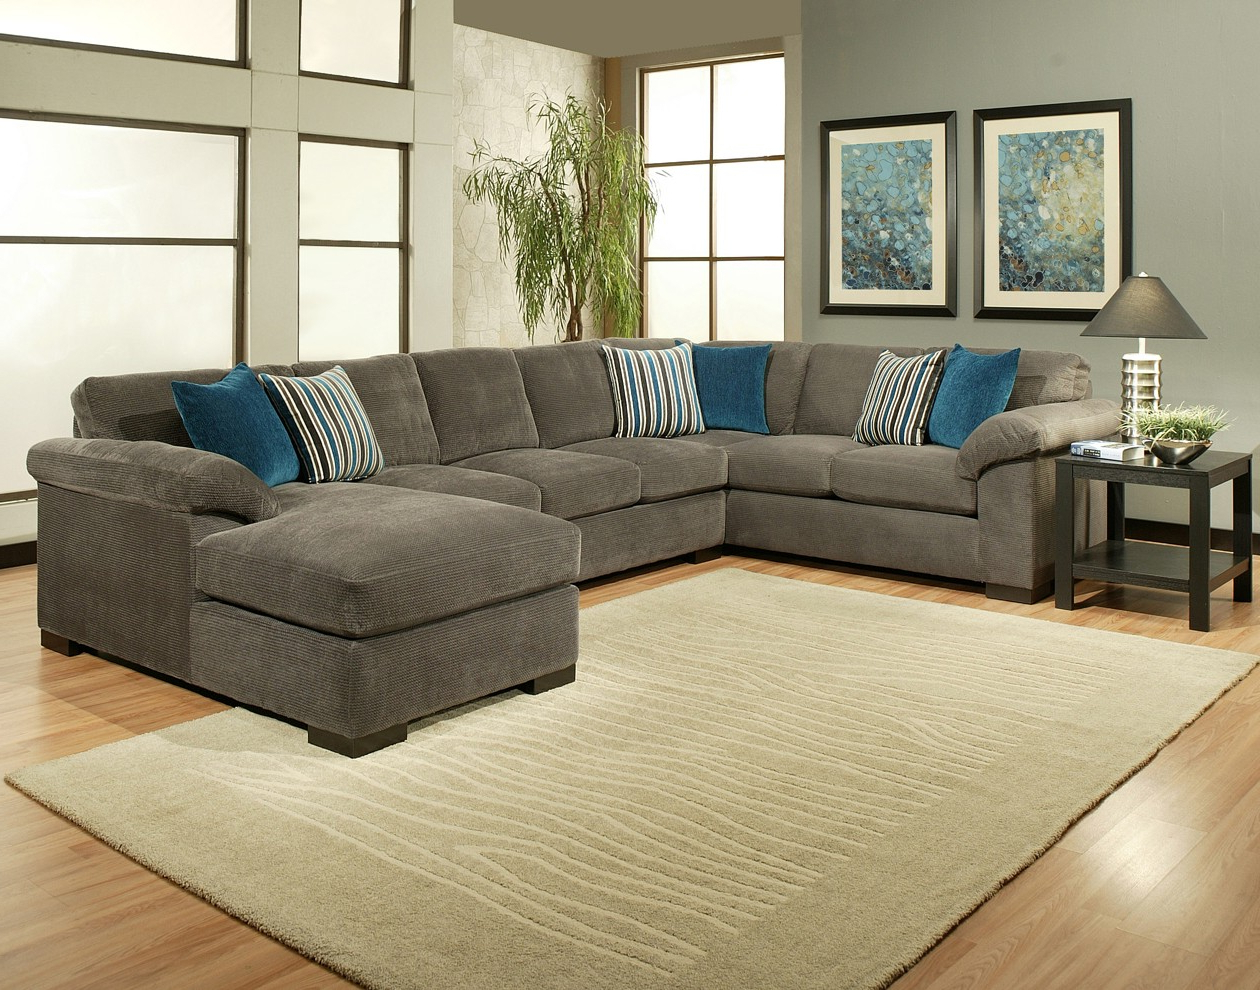 2018 Sierra Down 3 Piece Sectionals With Laf Chaise In Comfort Industries 3 Pc Fire Fly Sectional Sofa (View 1 of 20)